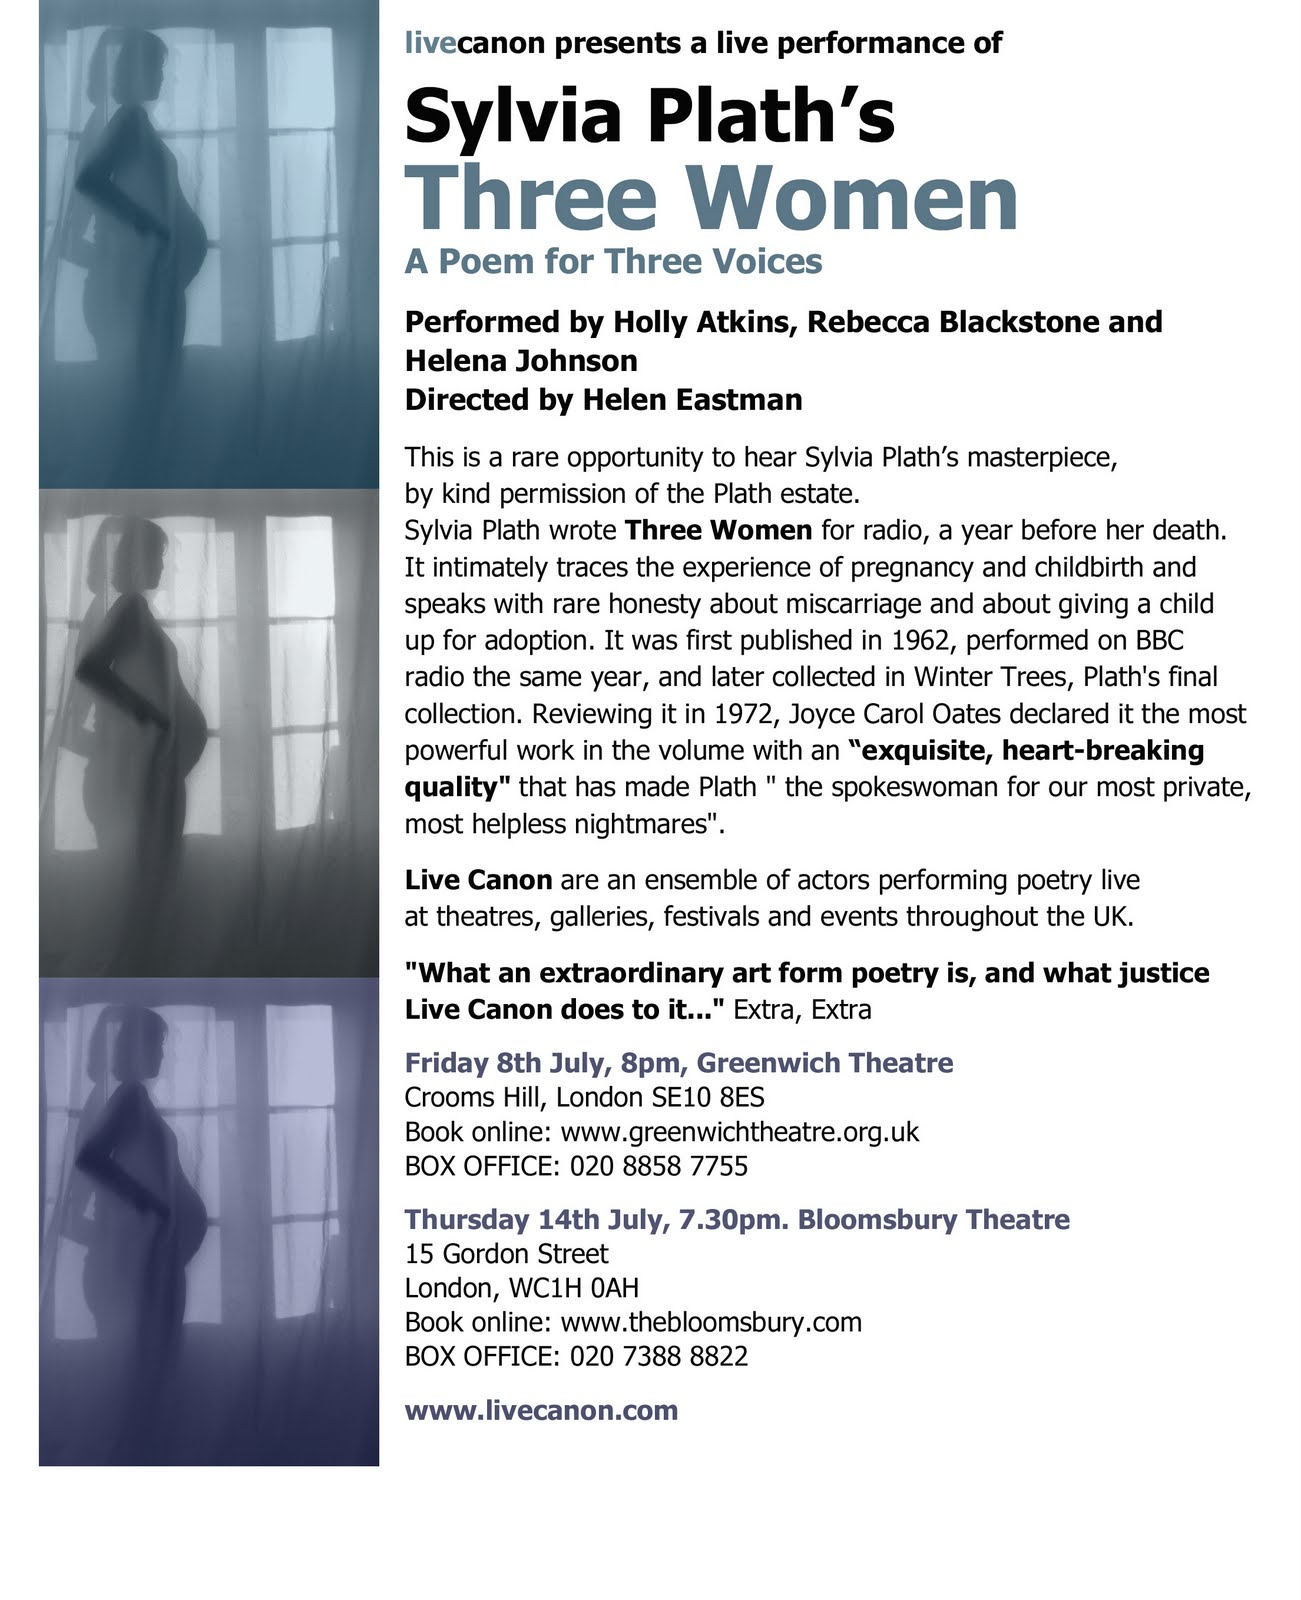 Helen Eastman Of Live Canon Is Directing Two Performances Of Sylvia Plath's  Verse Poem